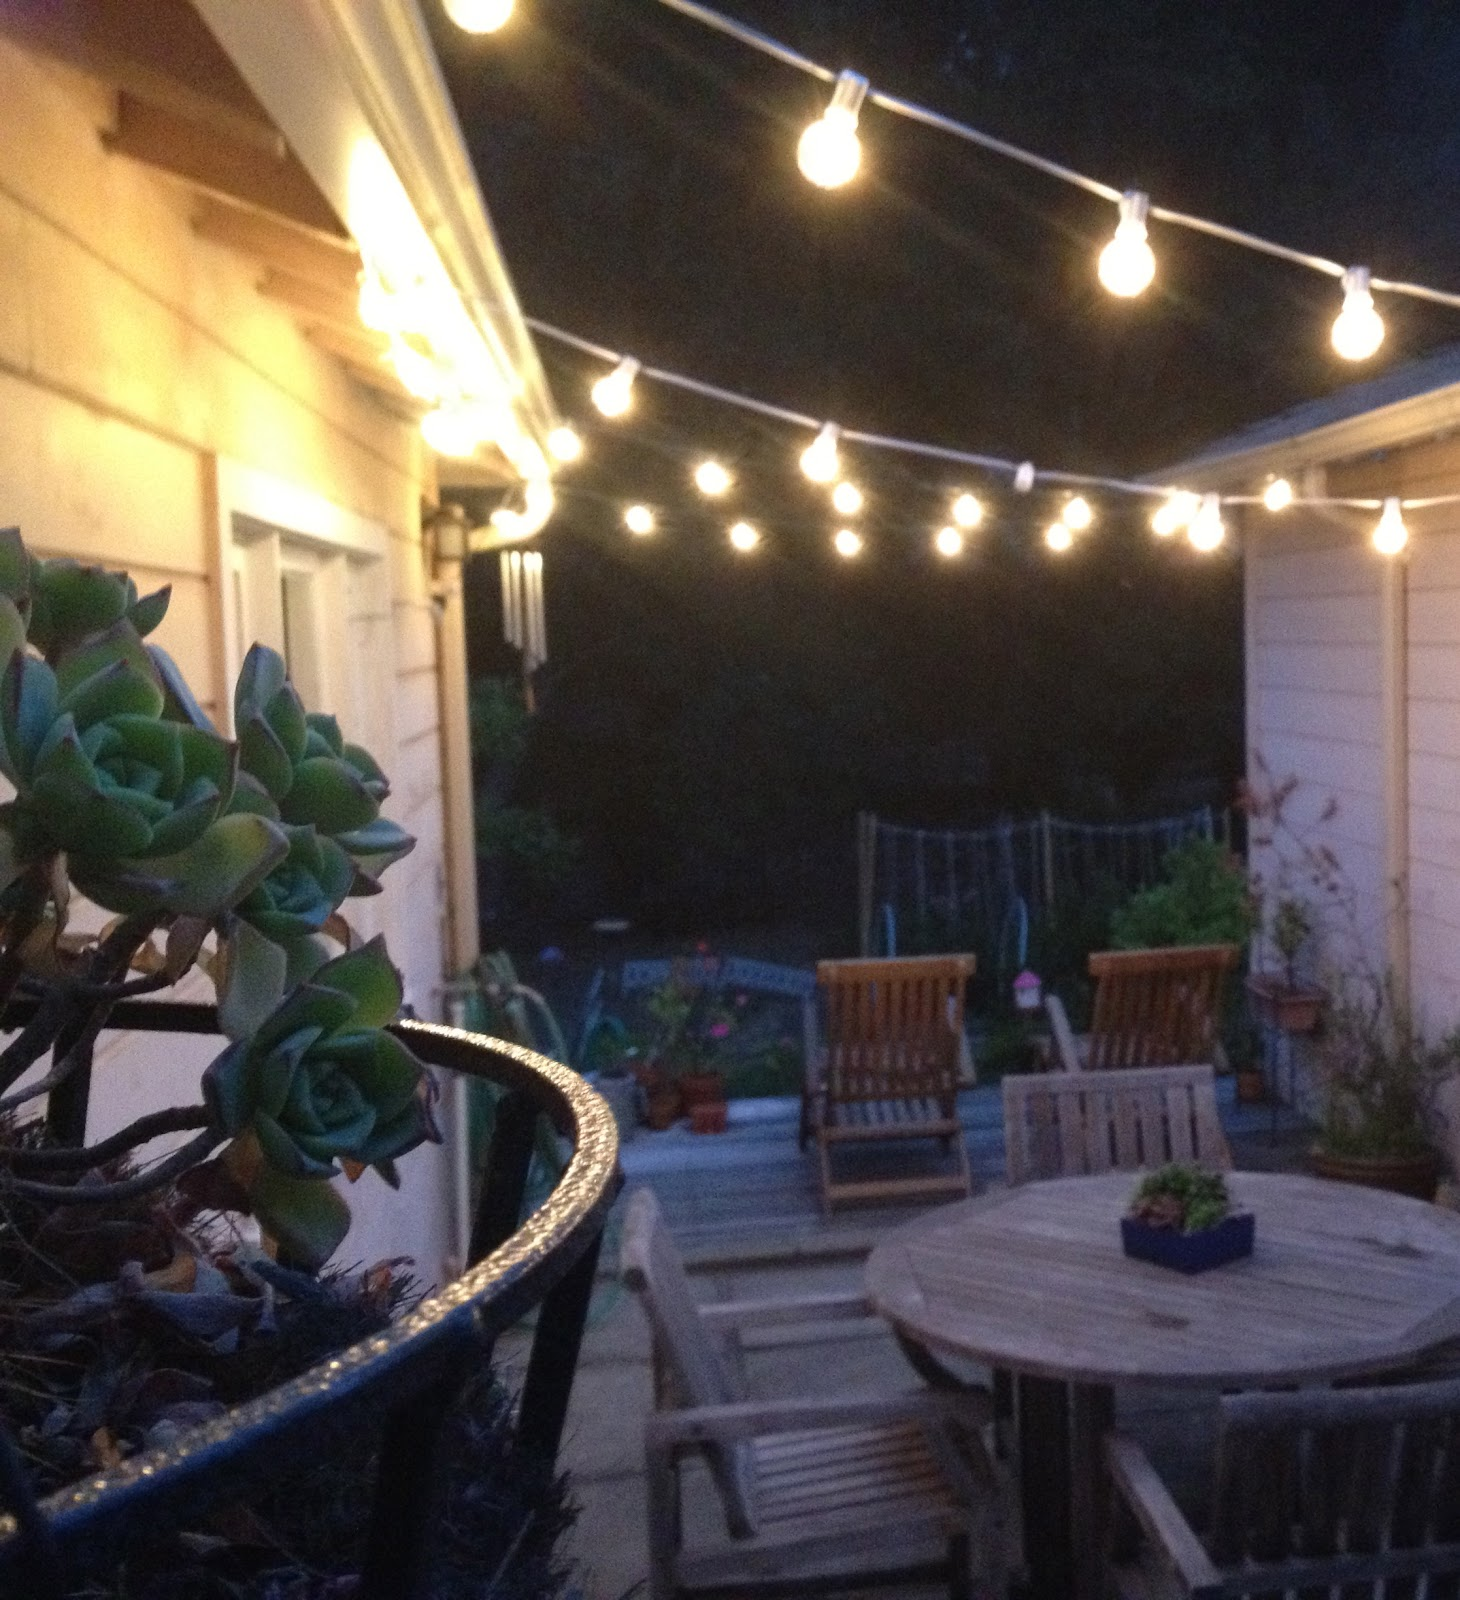 Outdoor String Lights Hardware: Backyard Entertaining - Copycatchic